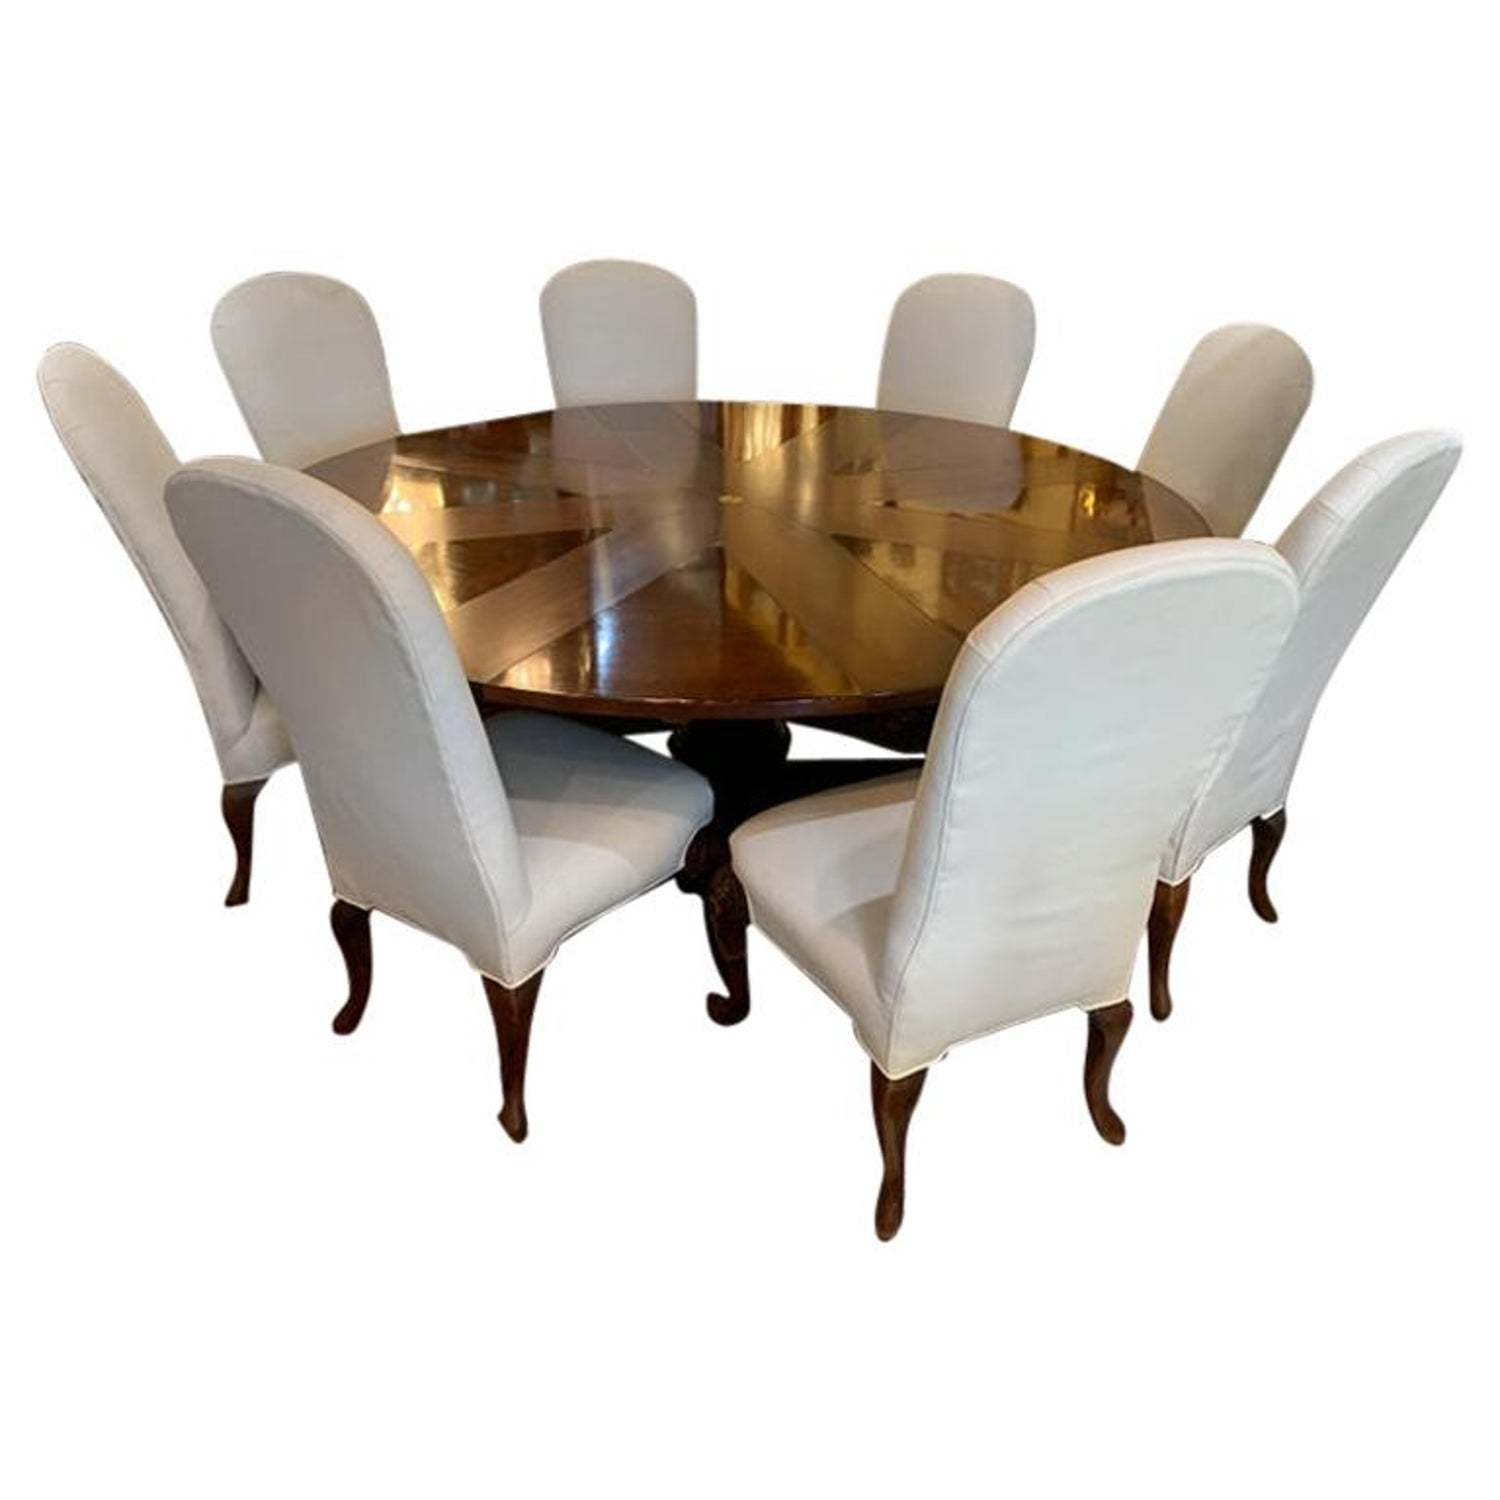 Clever Oscar De La A Jupe Movement Expansion Round Dining Table And 8 Chairs